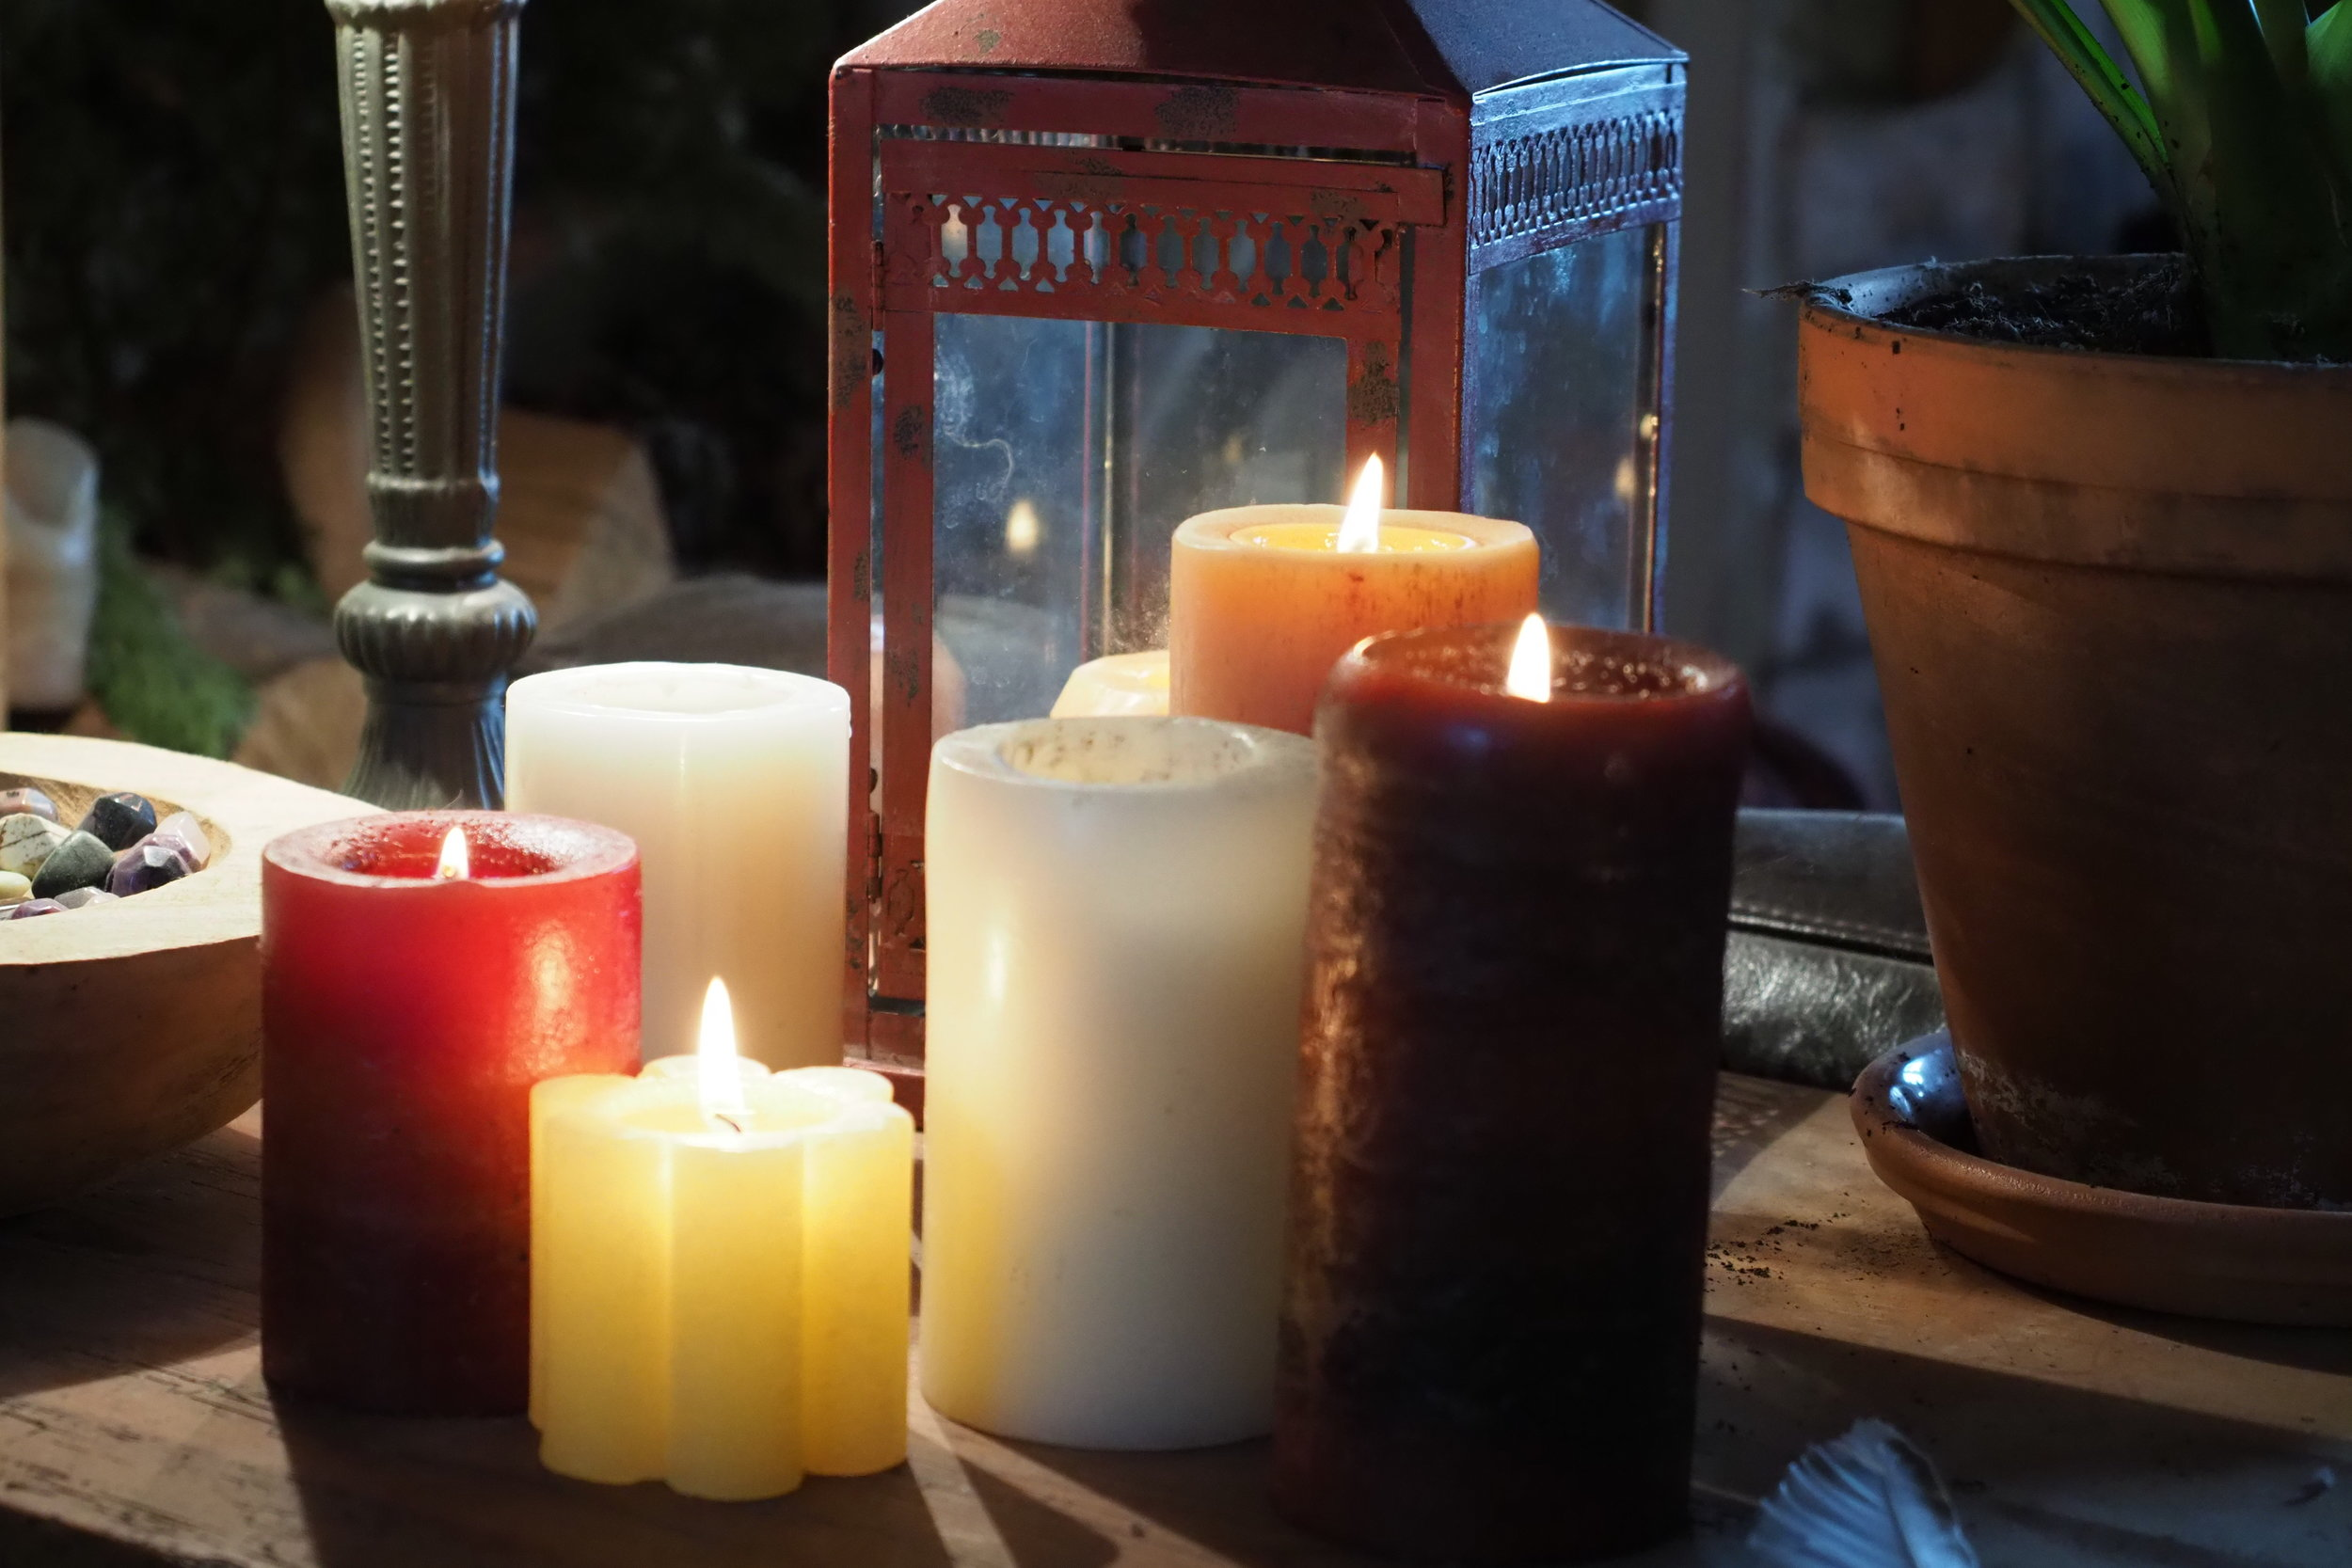 Readings - A reading will be an inspiring, uplifting experience where we will connect with Spirit.